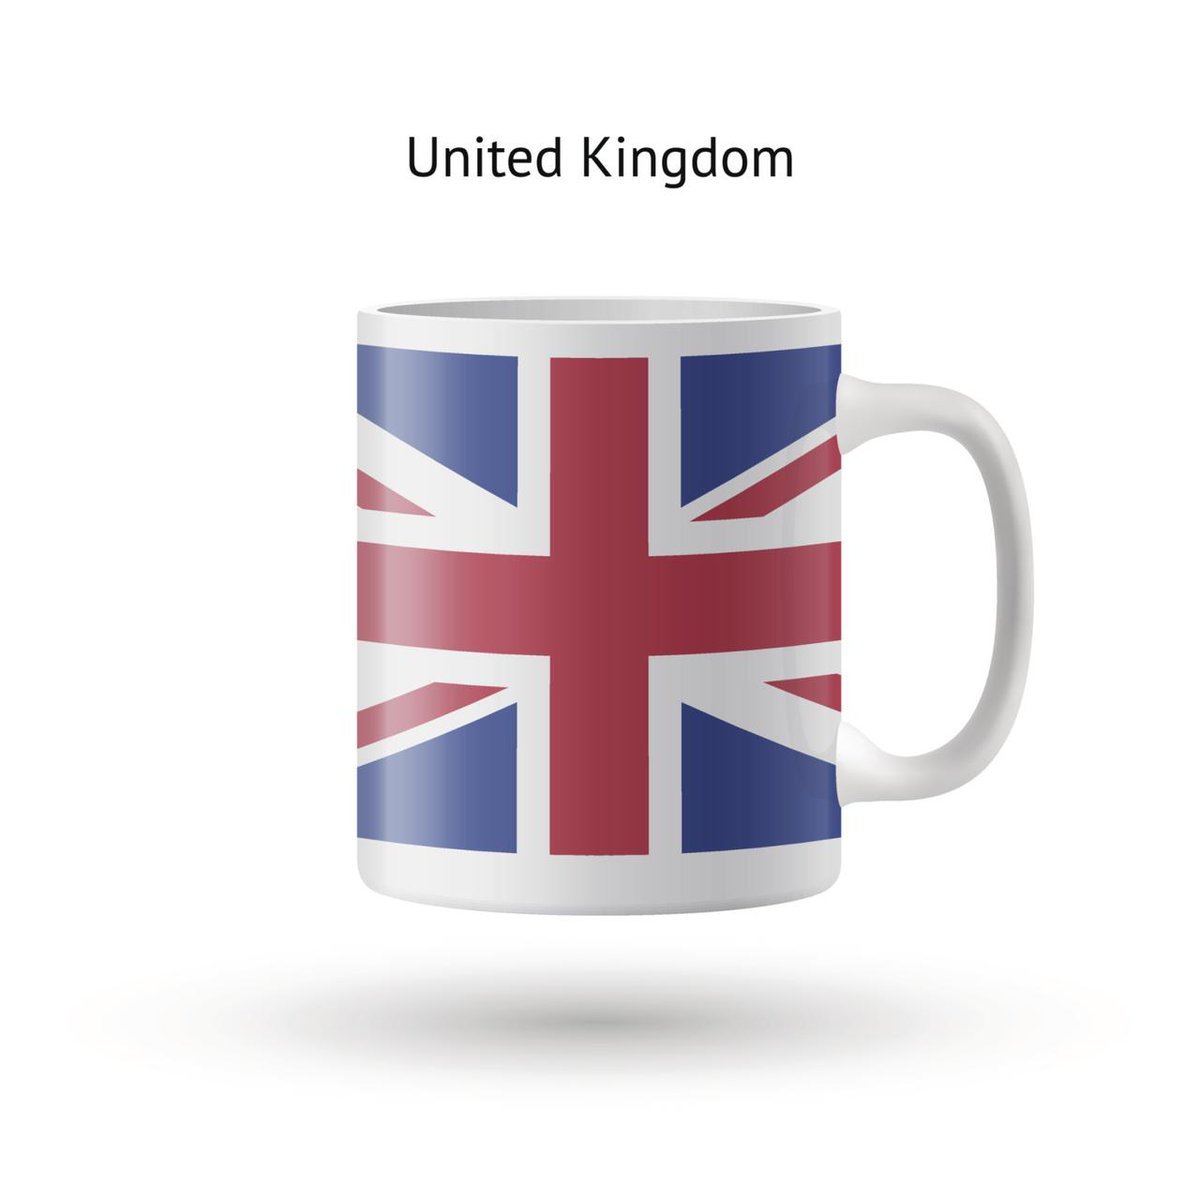 FACT: The United Kingdom drinks about 165 million cups of #tea a day. http://t.co/cEFGs4paSV